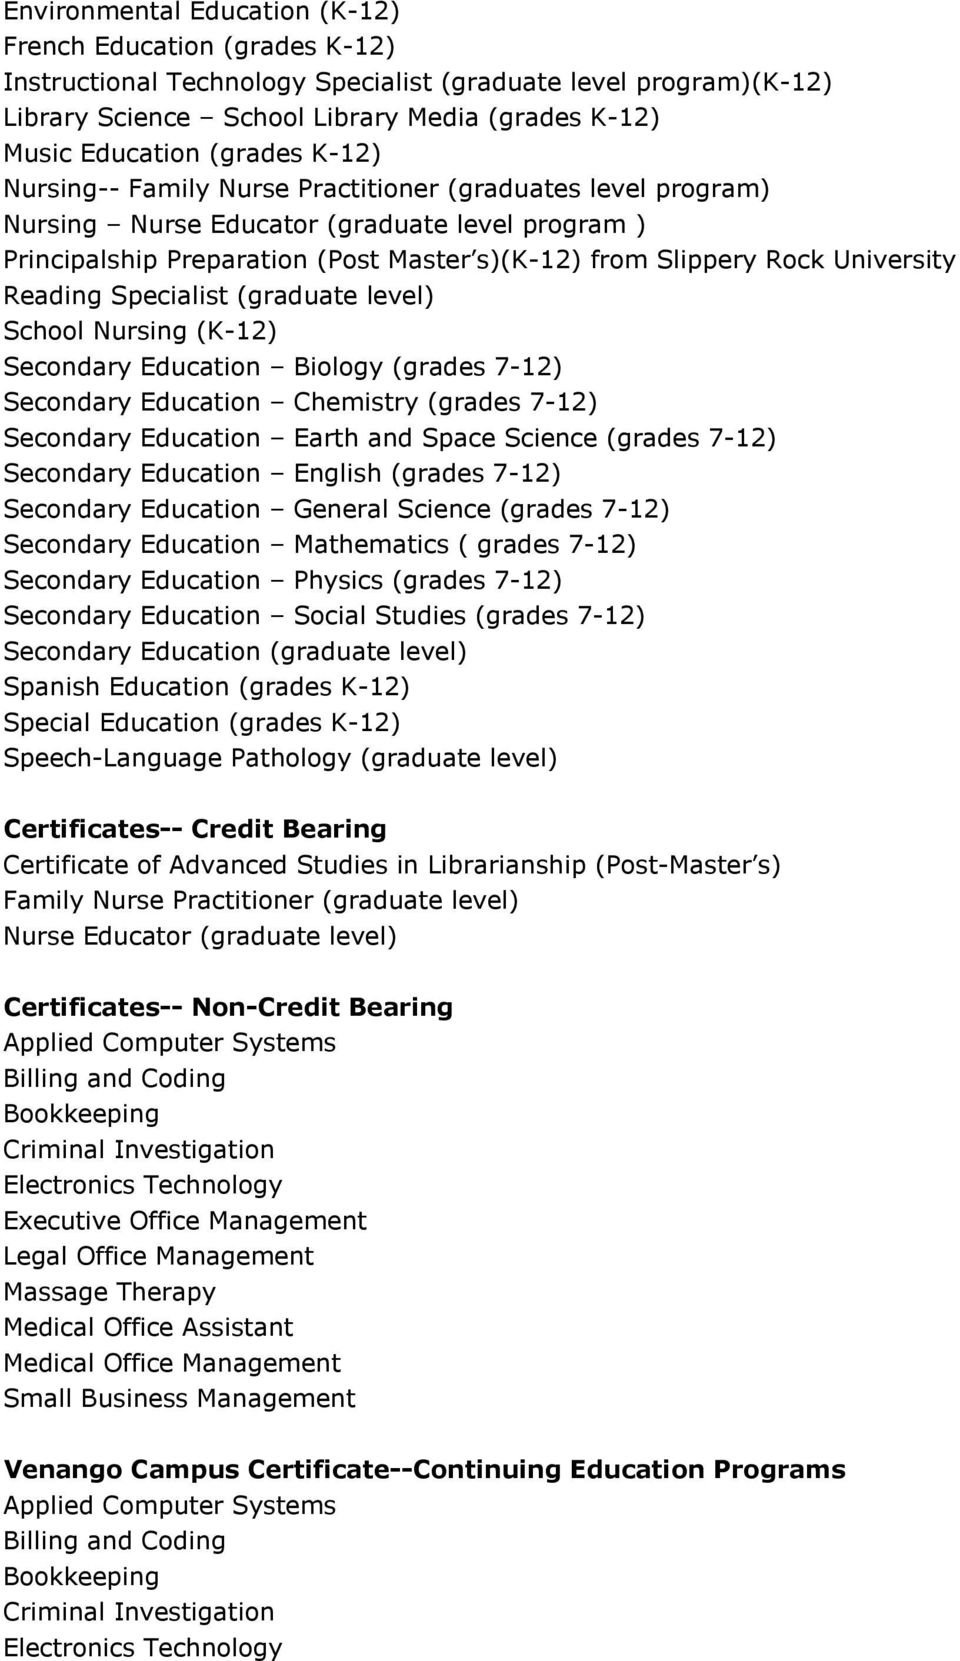 University Reading Specialist (graduate level) School Nursing (K-12) Secondary Education Biology (grades 7-12) Secondary Education Chemistry (grades 7-12) Secondary Education Earth and Space Science